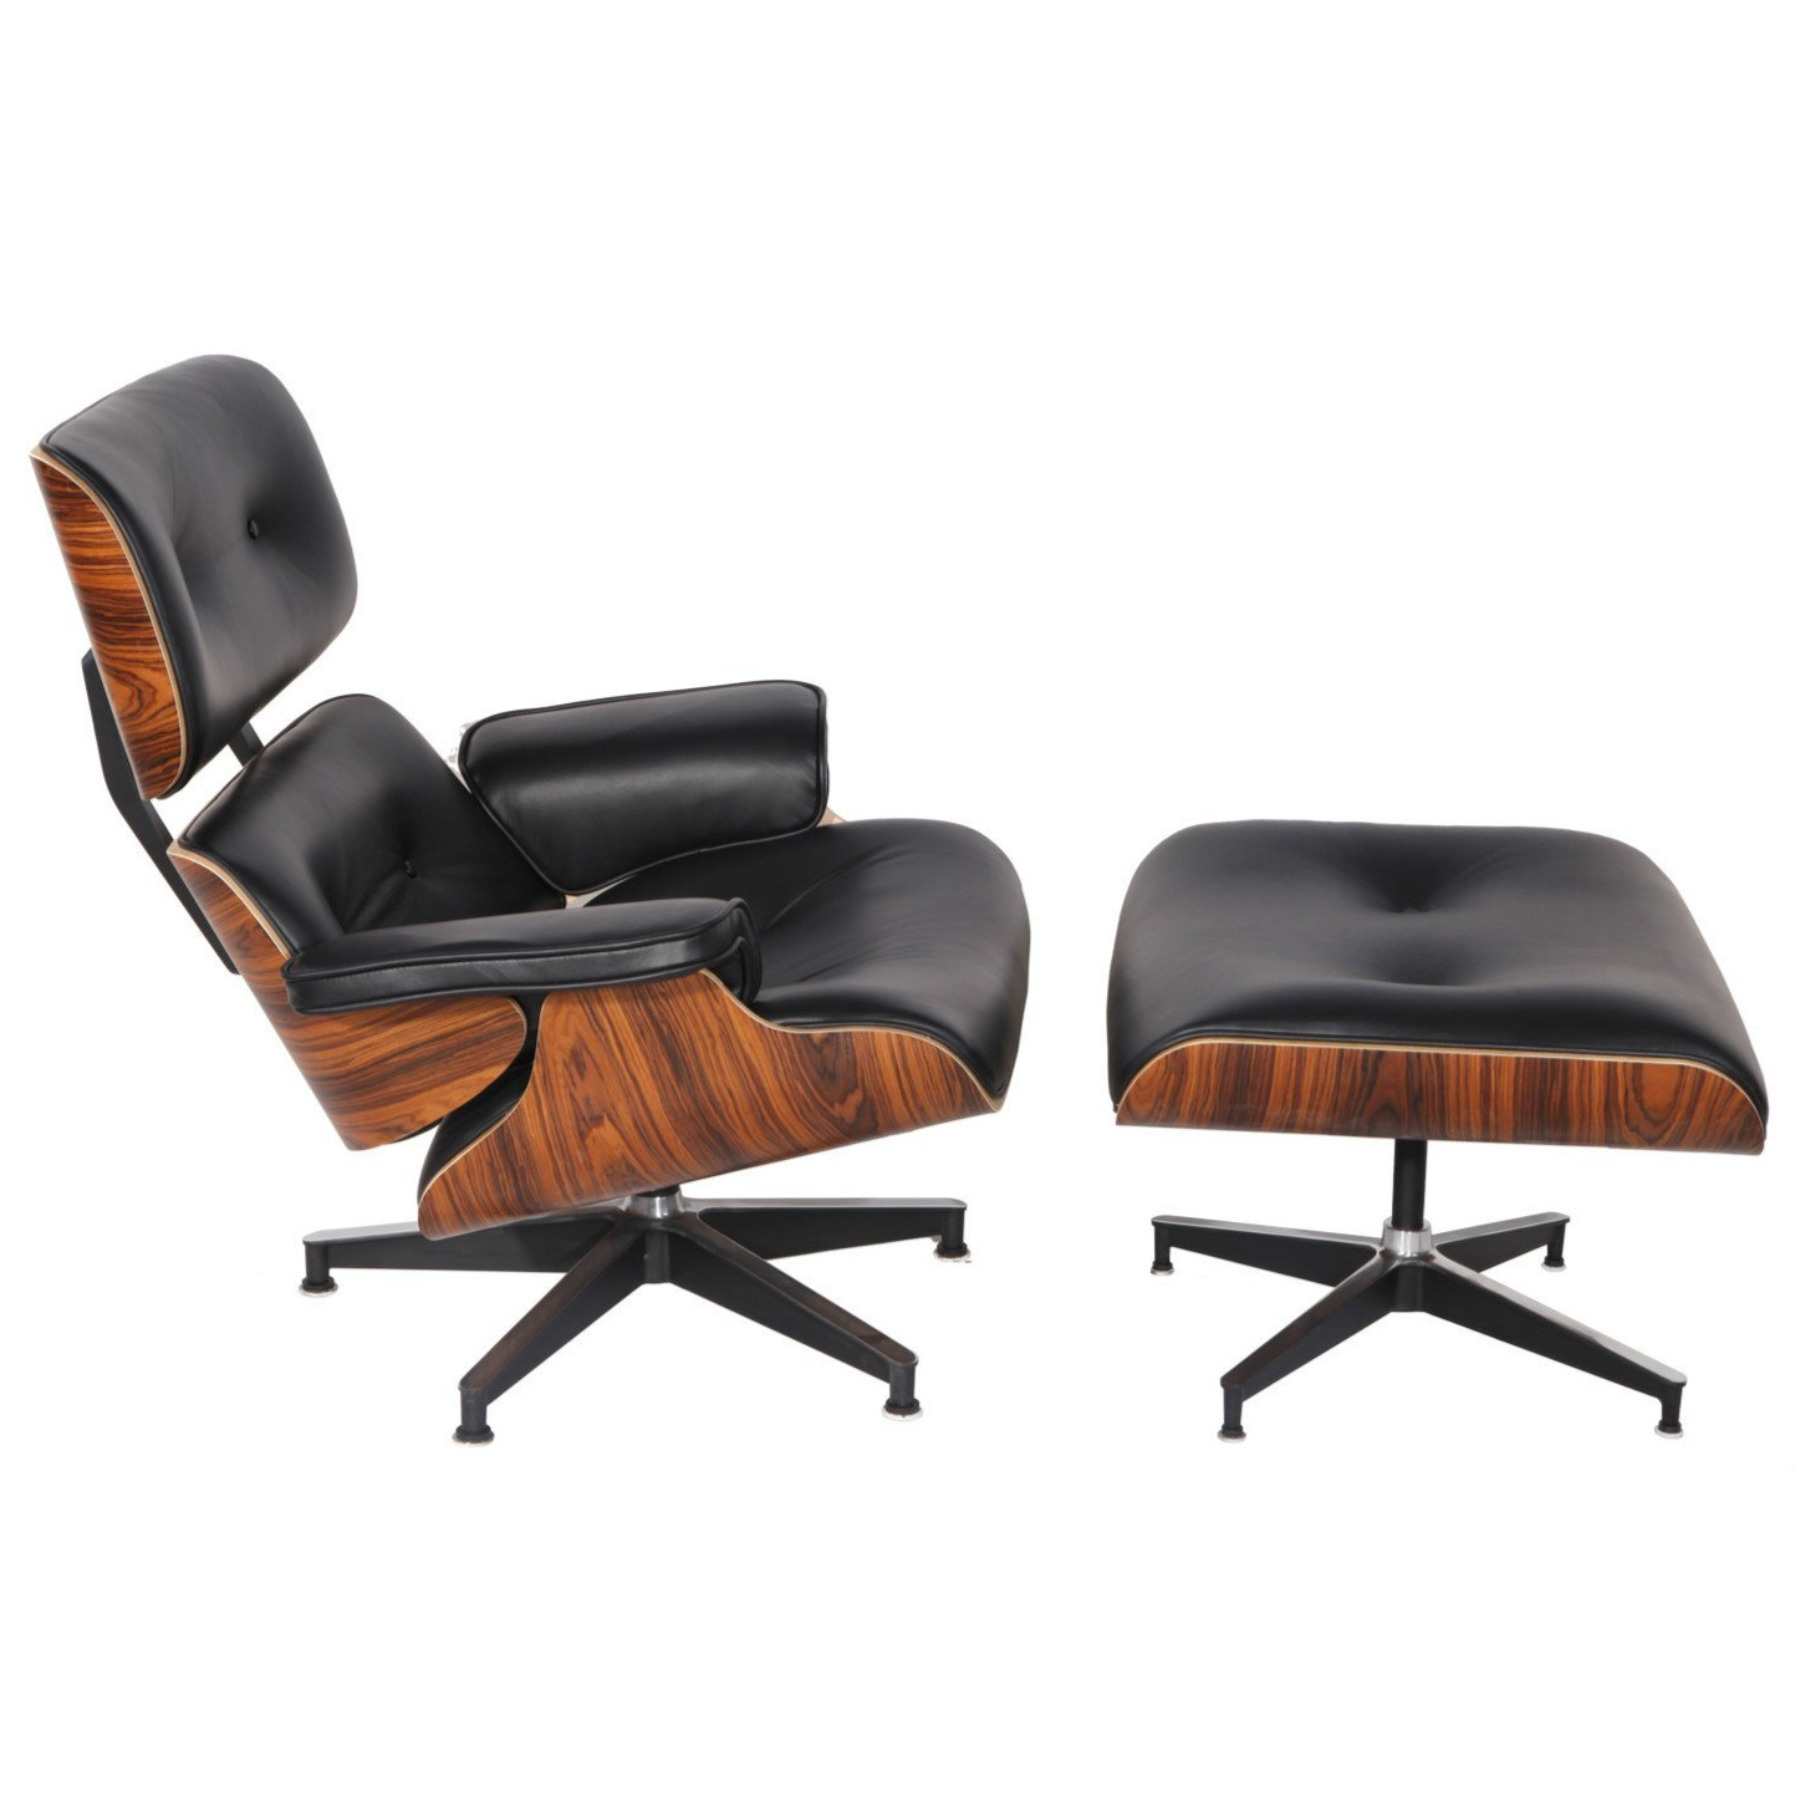 ... Mid Century Eames Style Lounge Chair U0026 Ottoman Reproduction Aniline  Leather Black Palisander ...